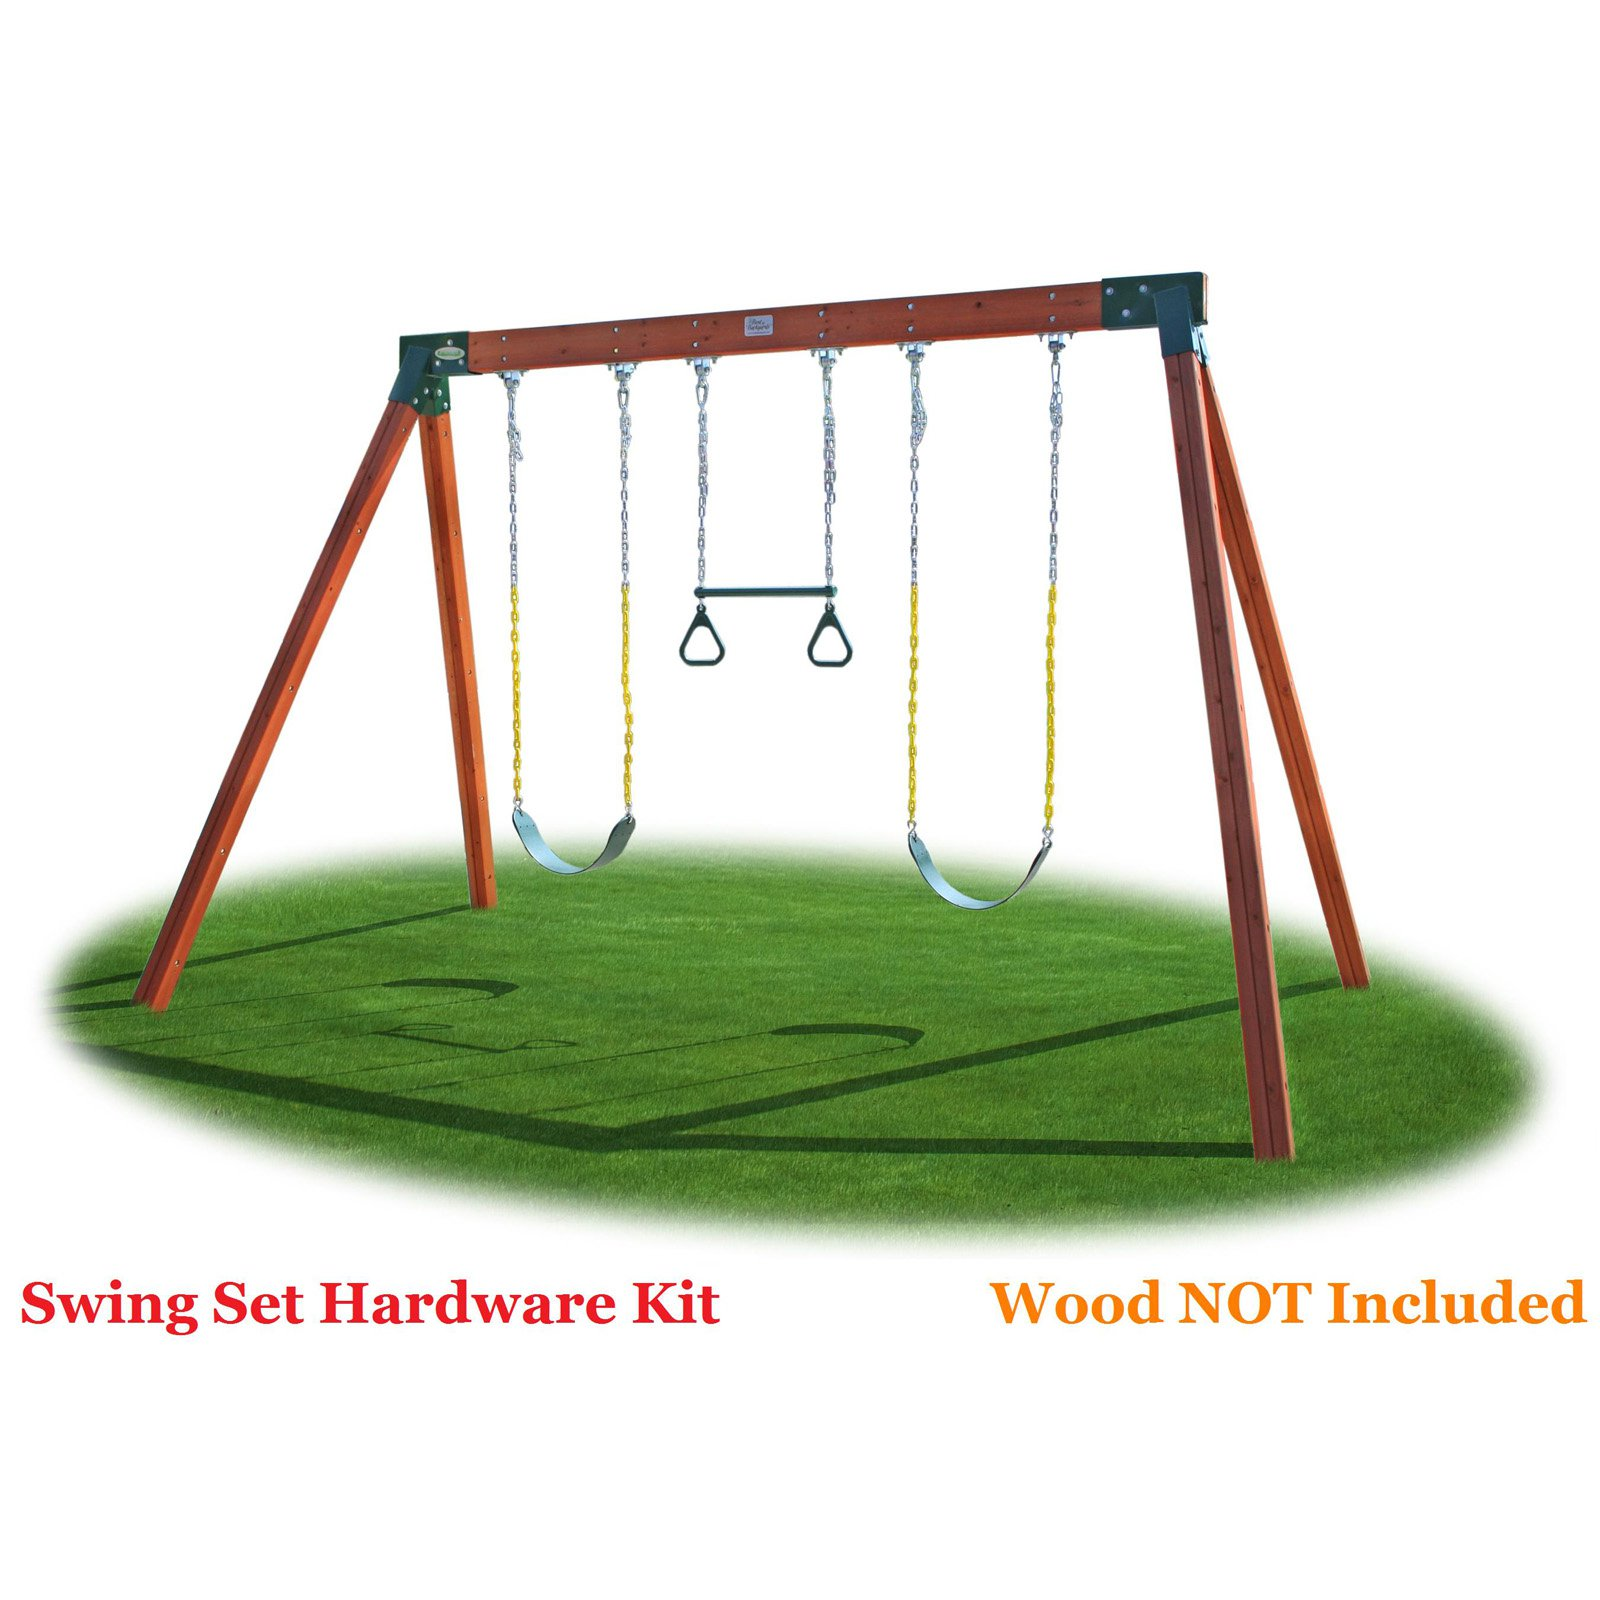 Swing Seats Ring Trapeze Bar and All Assembly Hardware and Instructions Wood Not Included Eastern Jungle Gym DIY Swing Set Hardware Kit with Easy 1-2-3 A-Frame Brackets